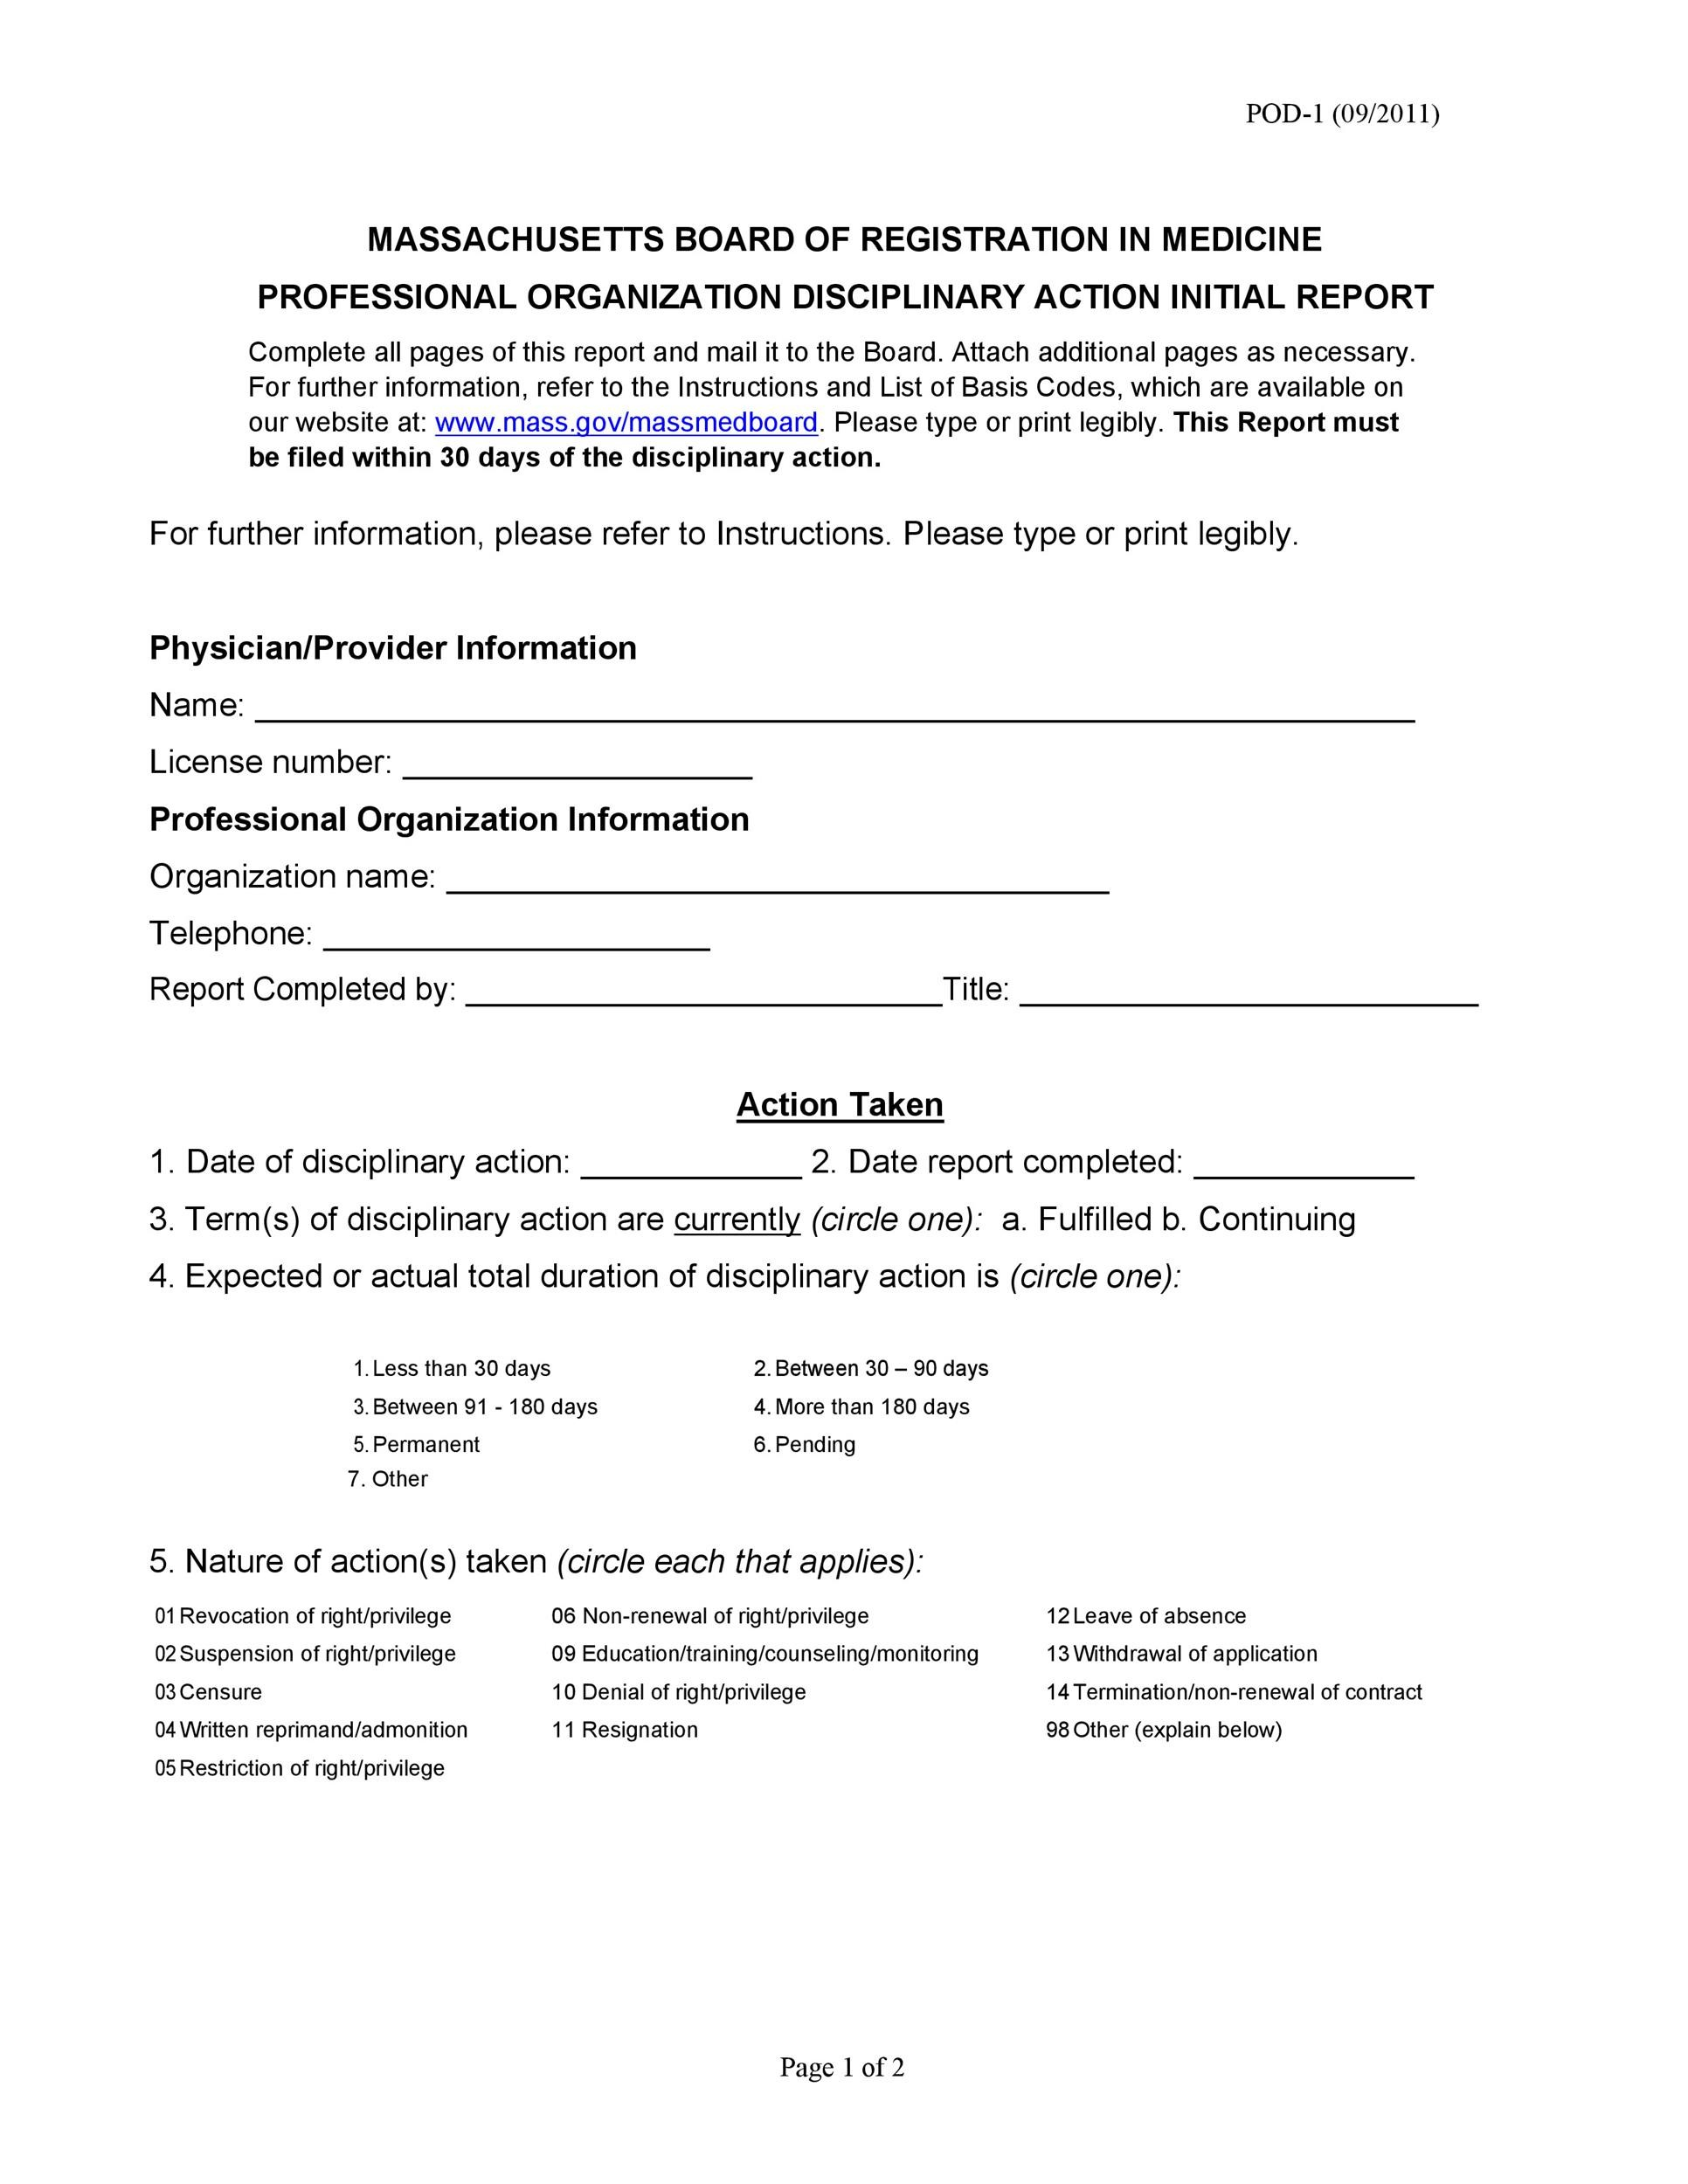 Discipline Form Template  BesikEightyCo